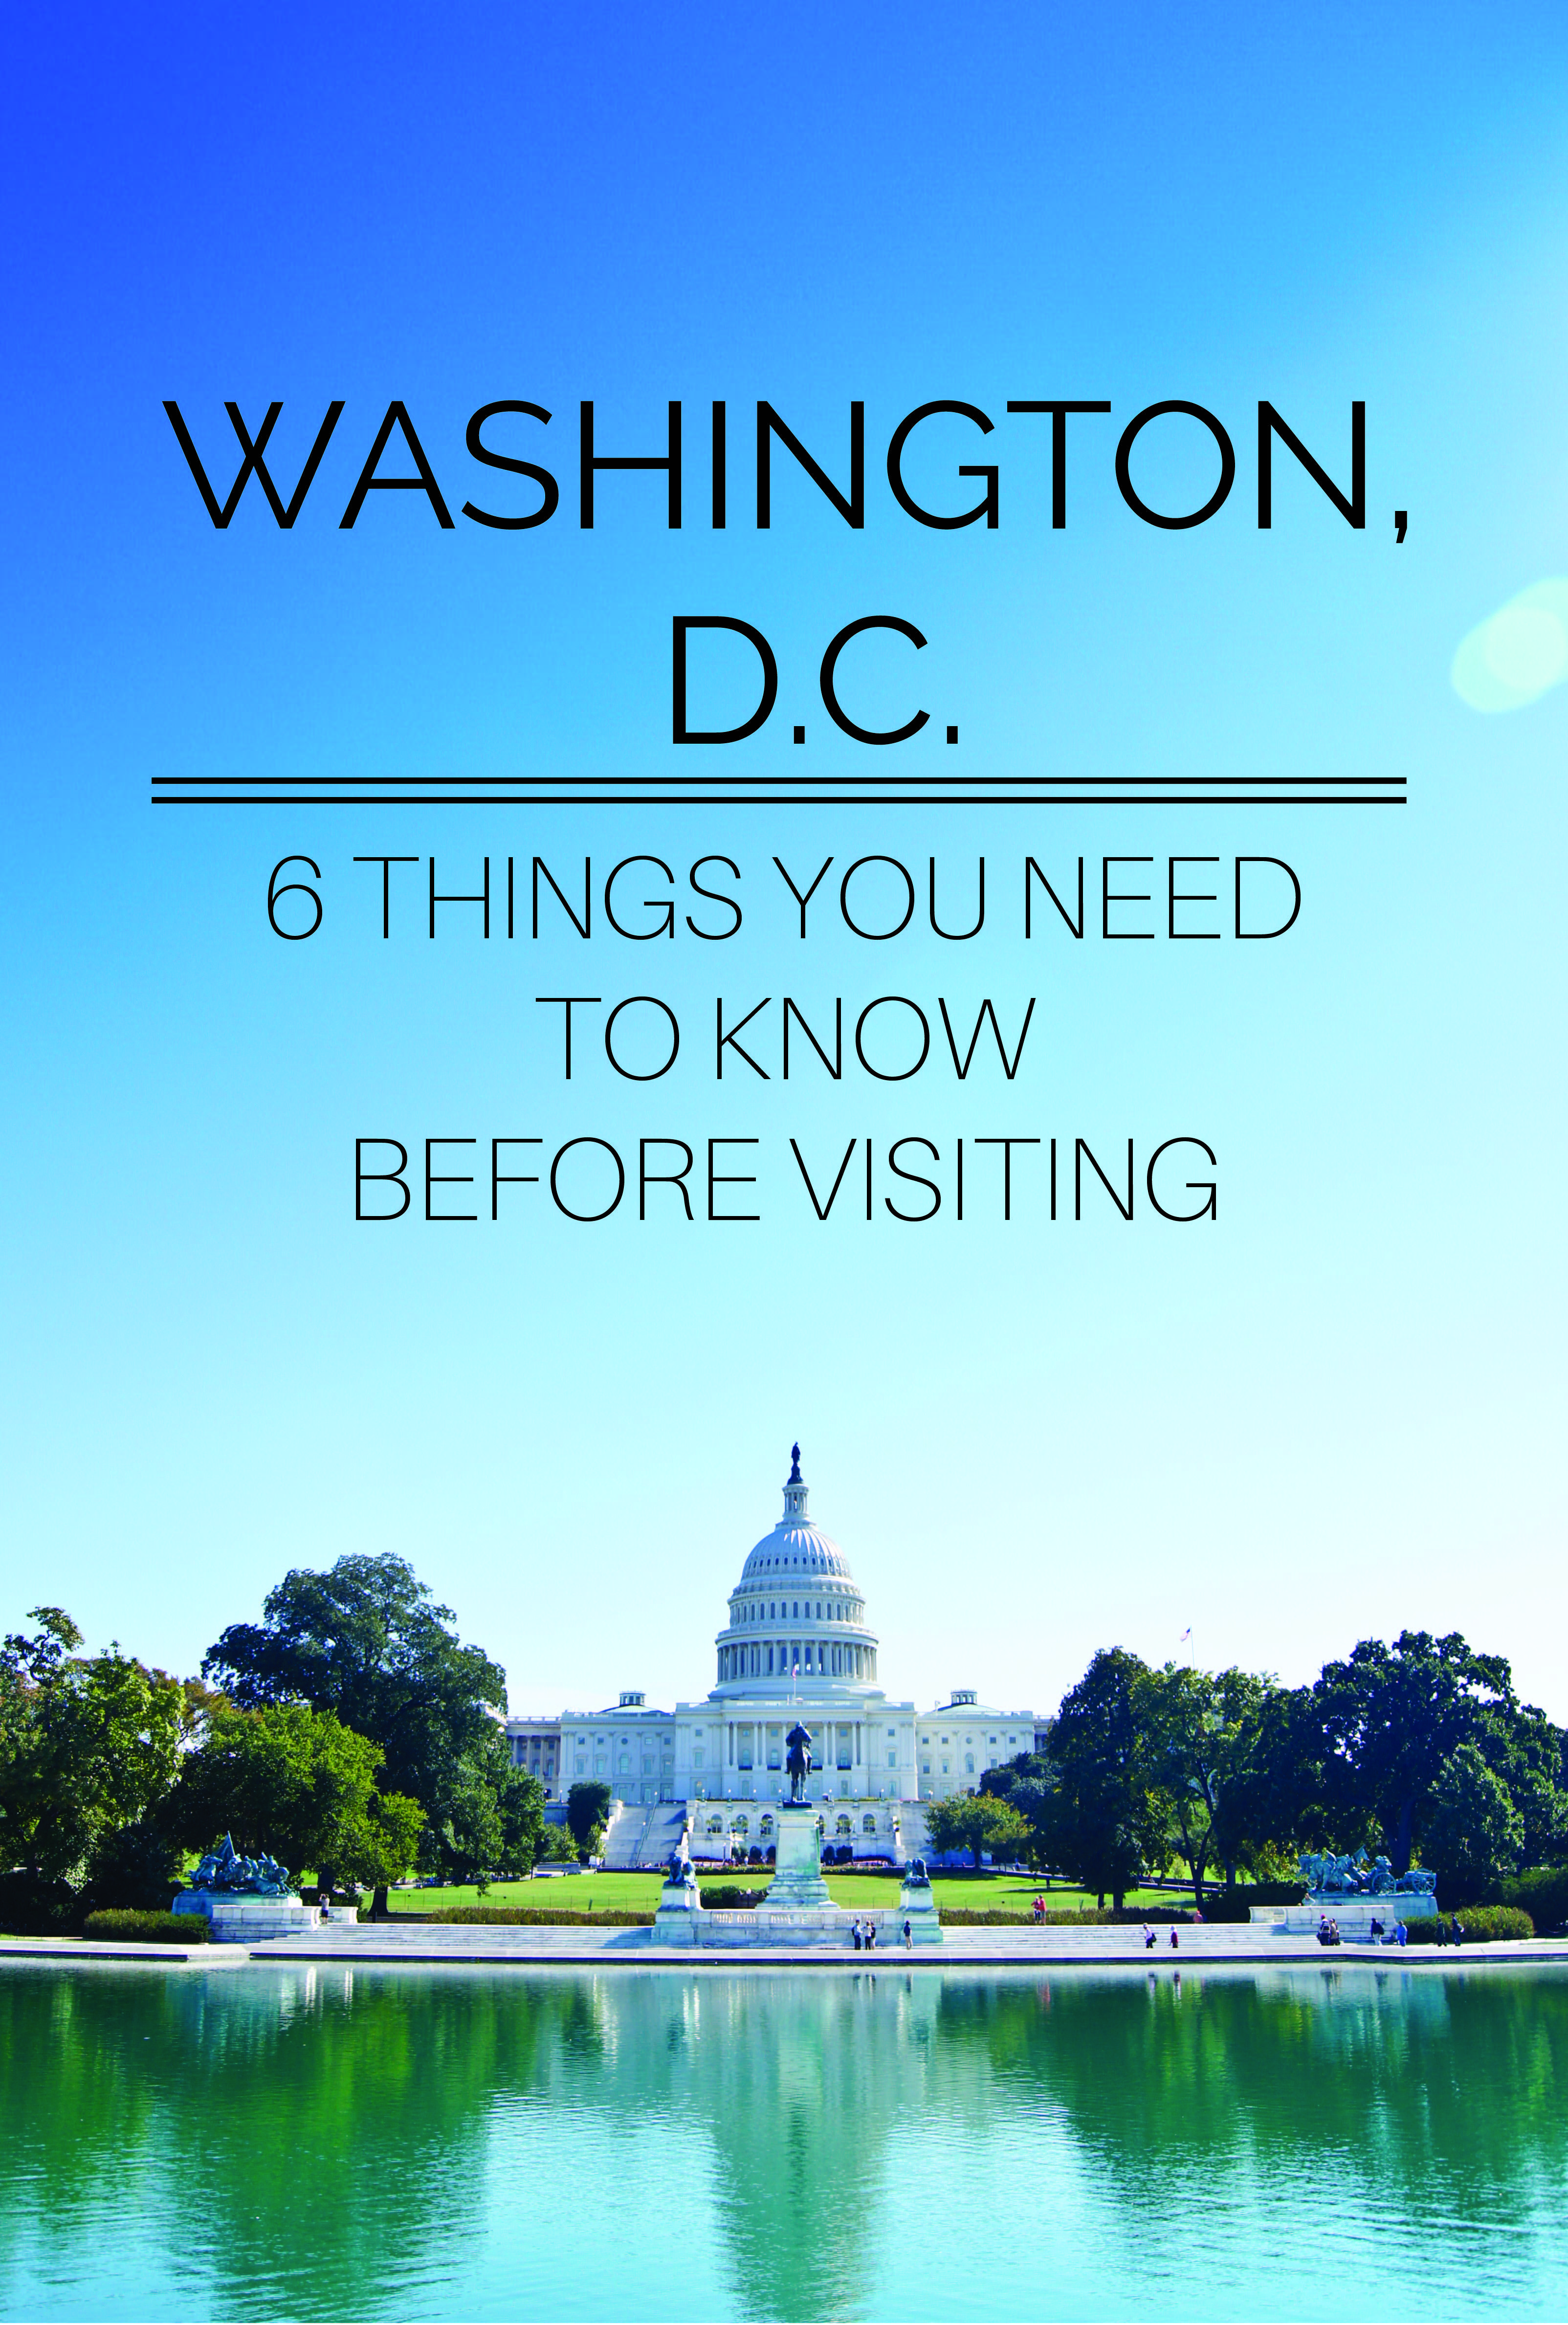 6 Things to Know Before Visiting Washington